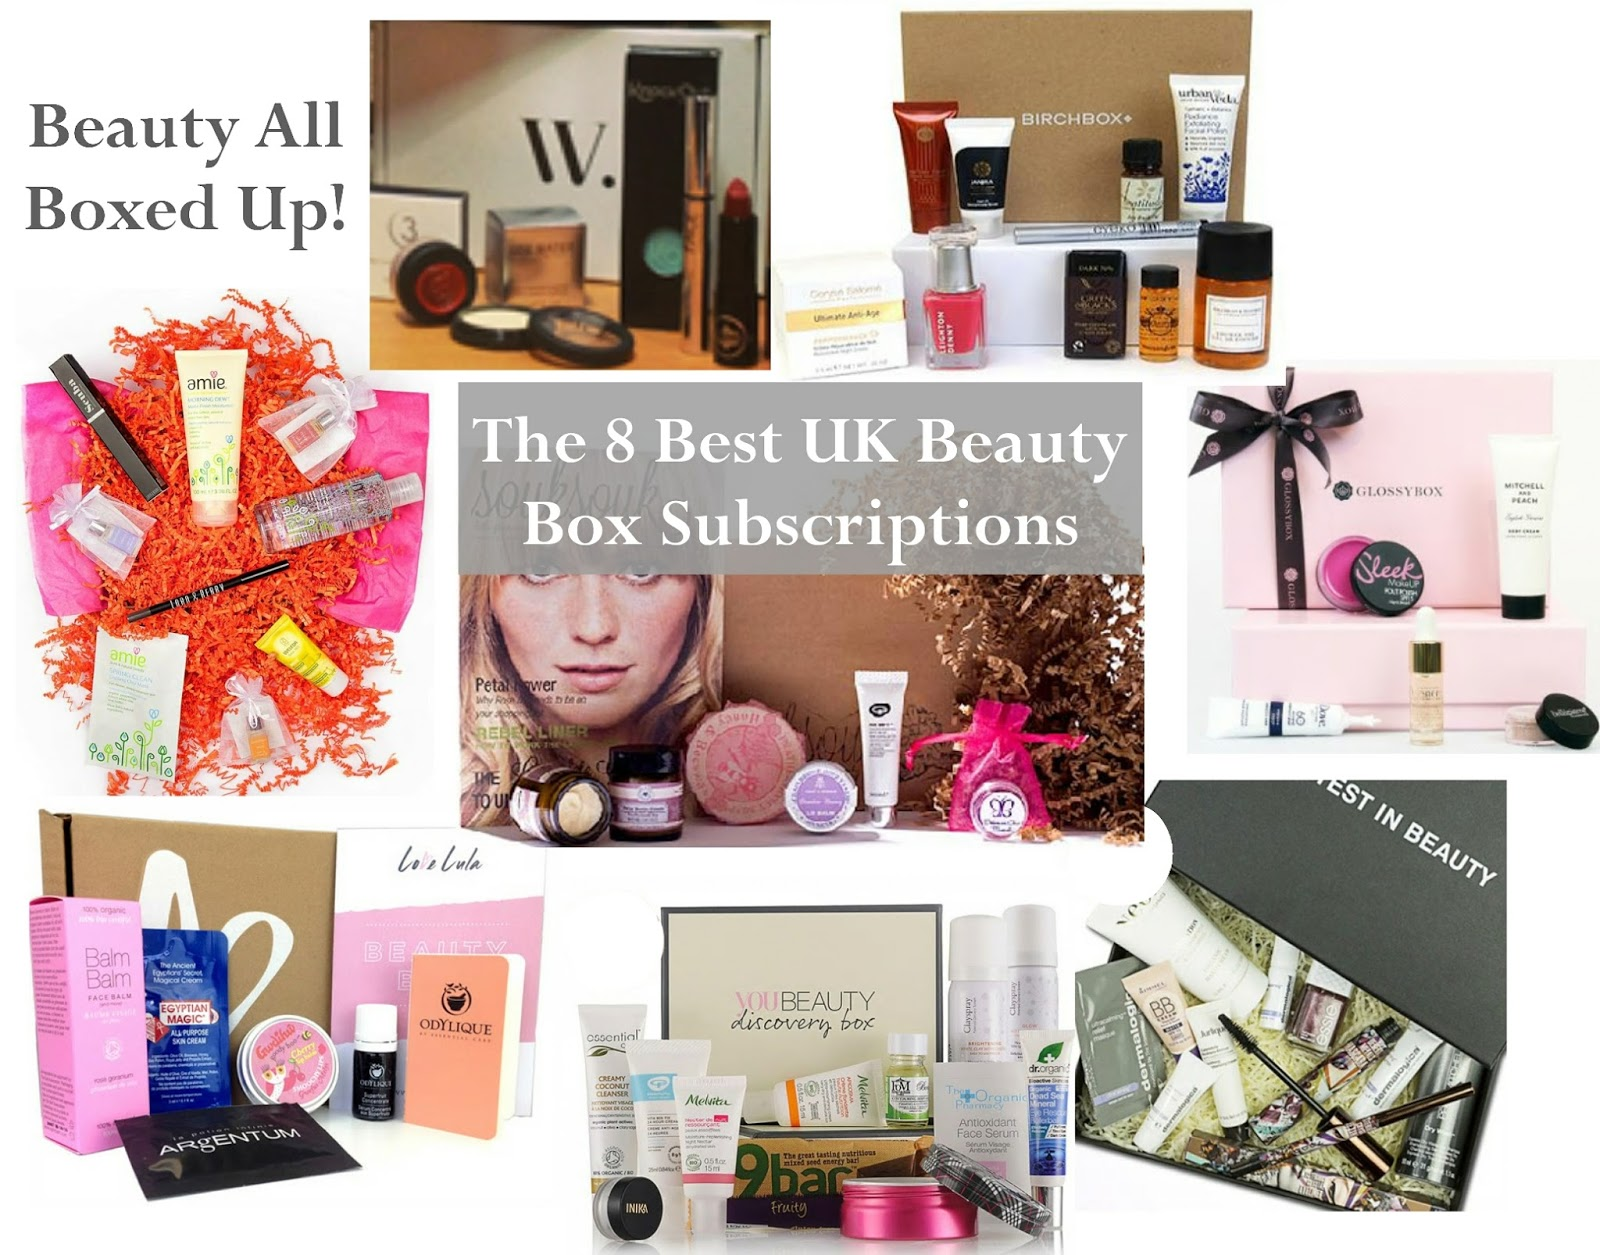 Beauty All Boxed Up - The 8 Best UK Beauty Box Subscriptions